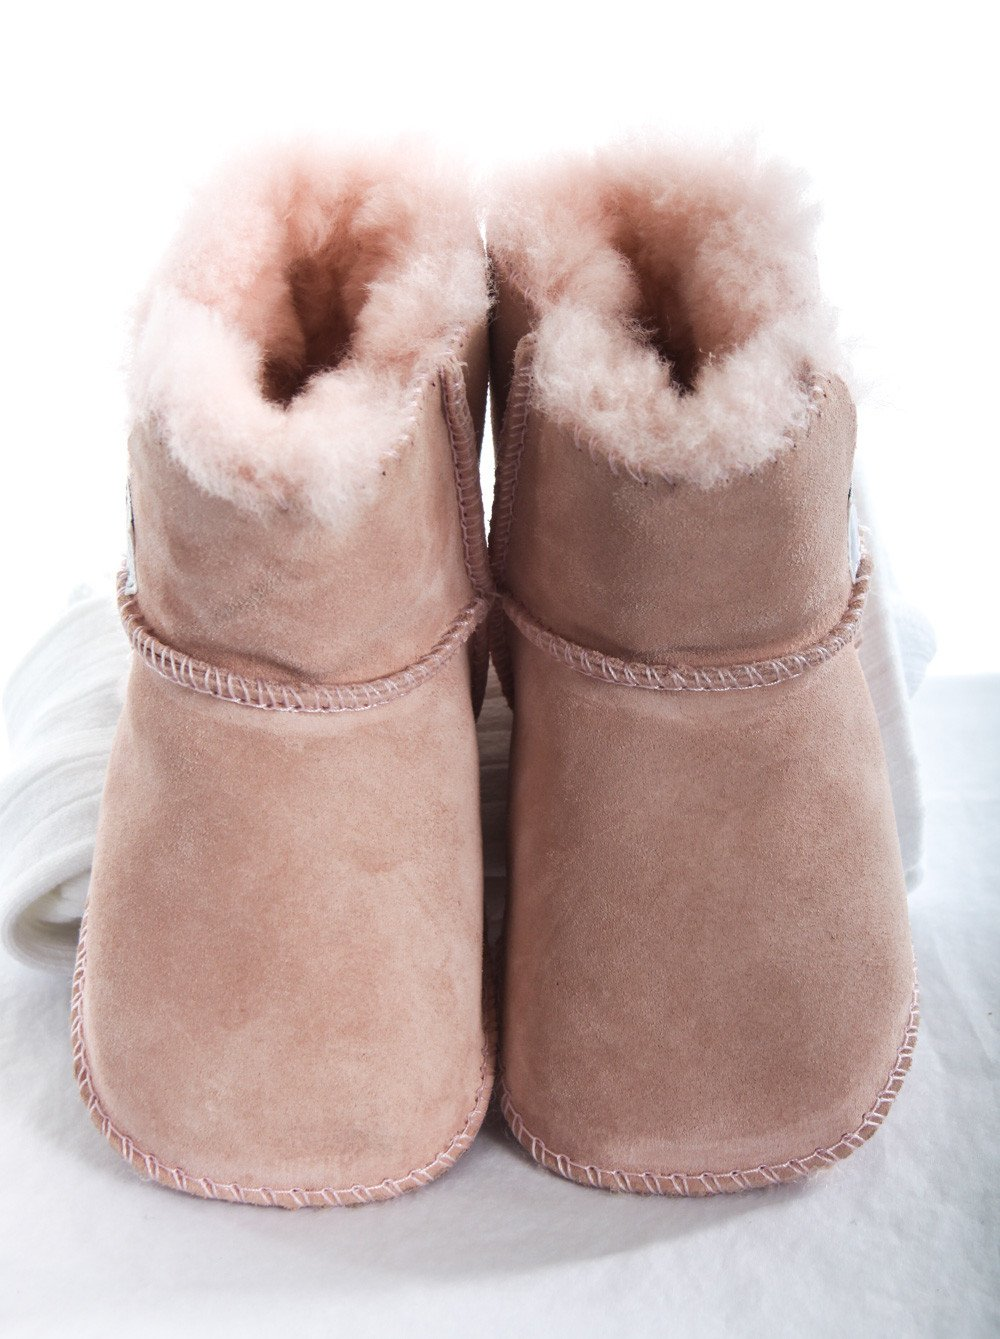 50675ee9e38 BABY UGGS PINK BOOTS INFANT SIZE 2 *SIZED AS A SMALL (US SIZE 2/3)